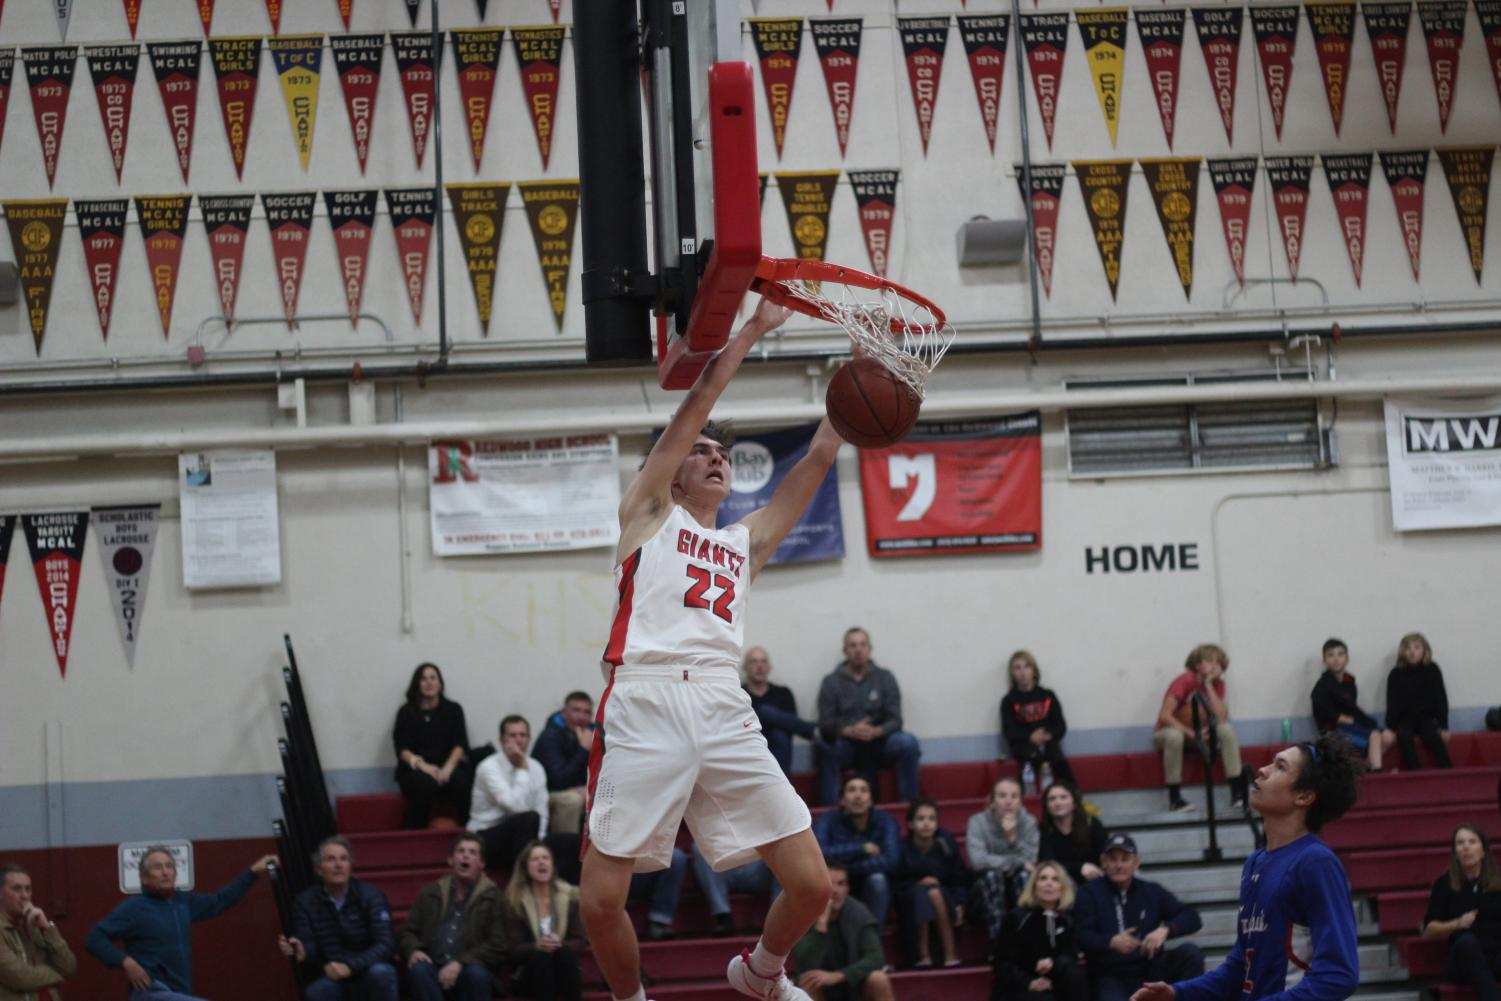 Brandon Radu throws a dunk against Tam High School.